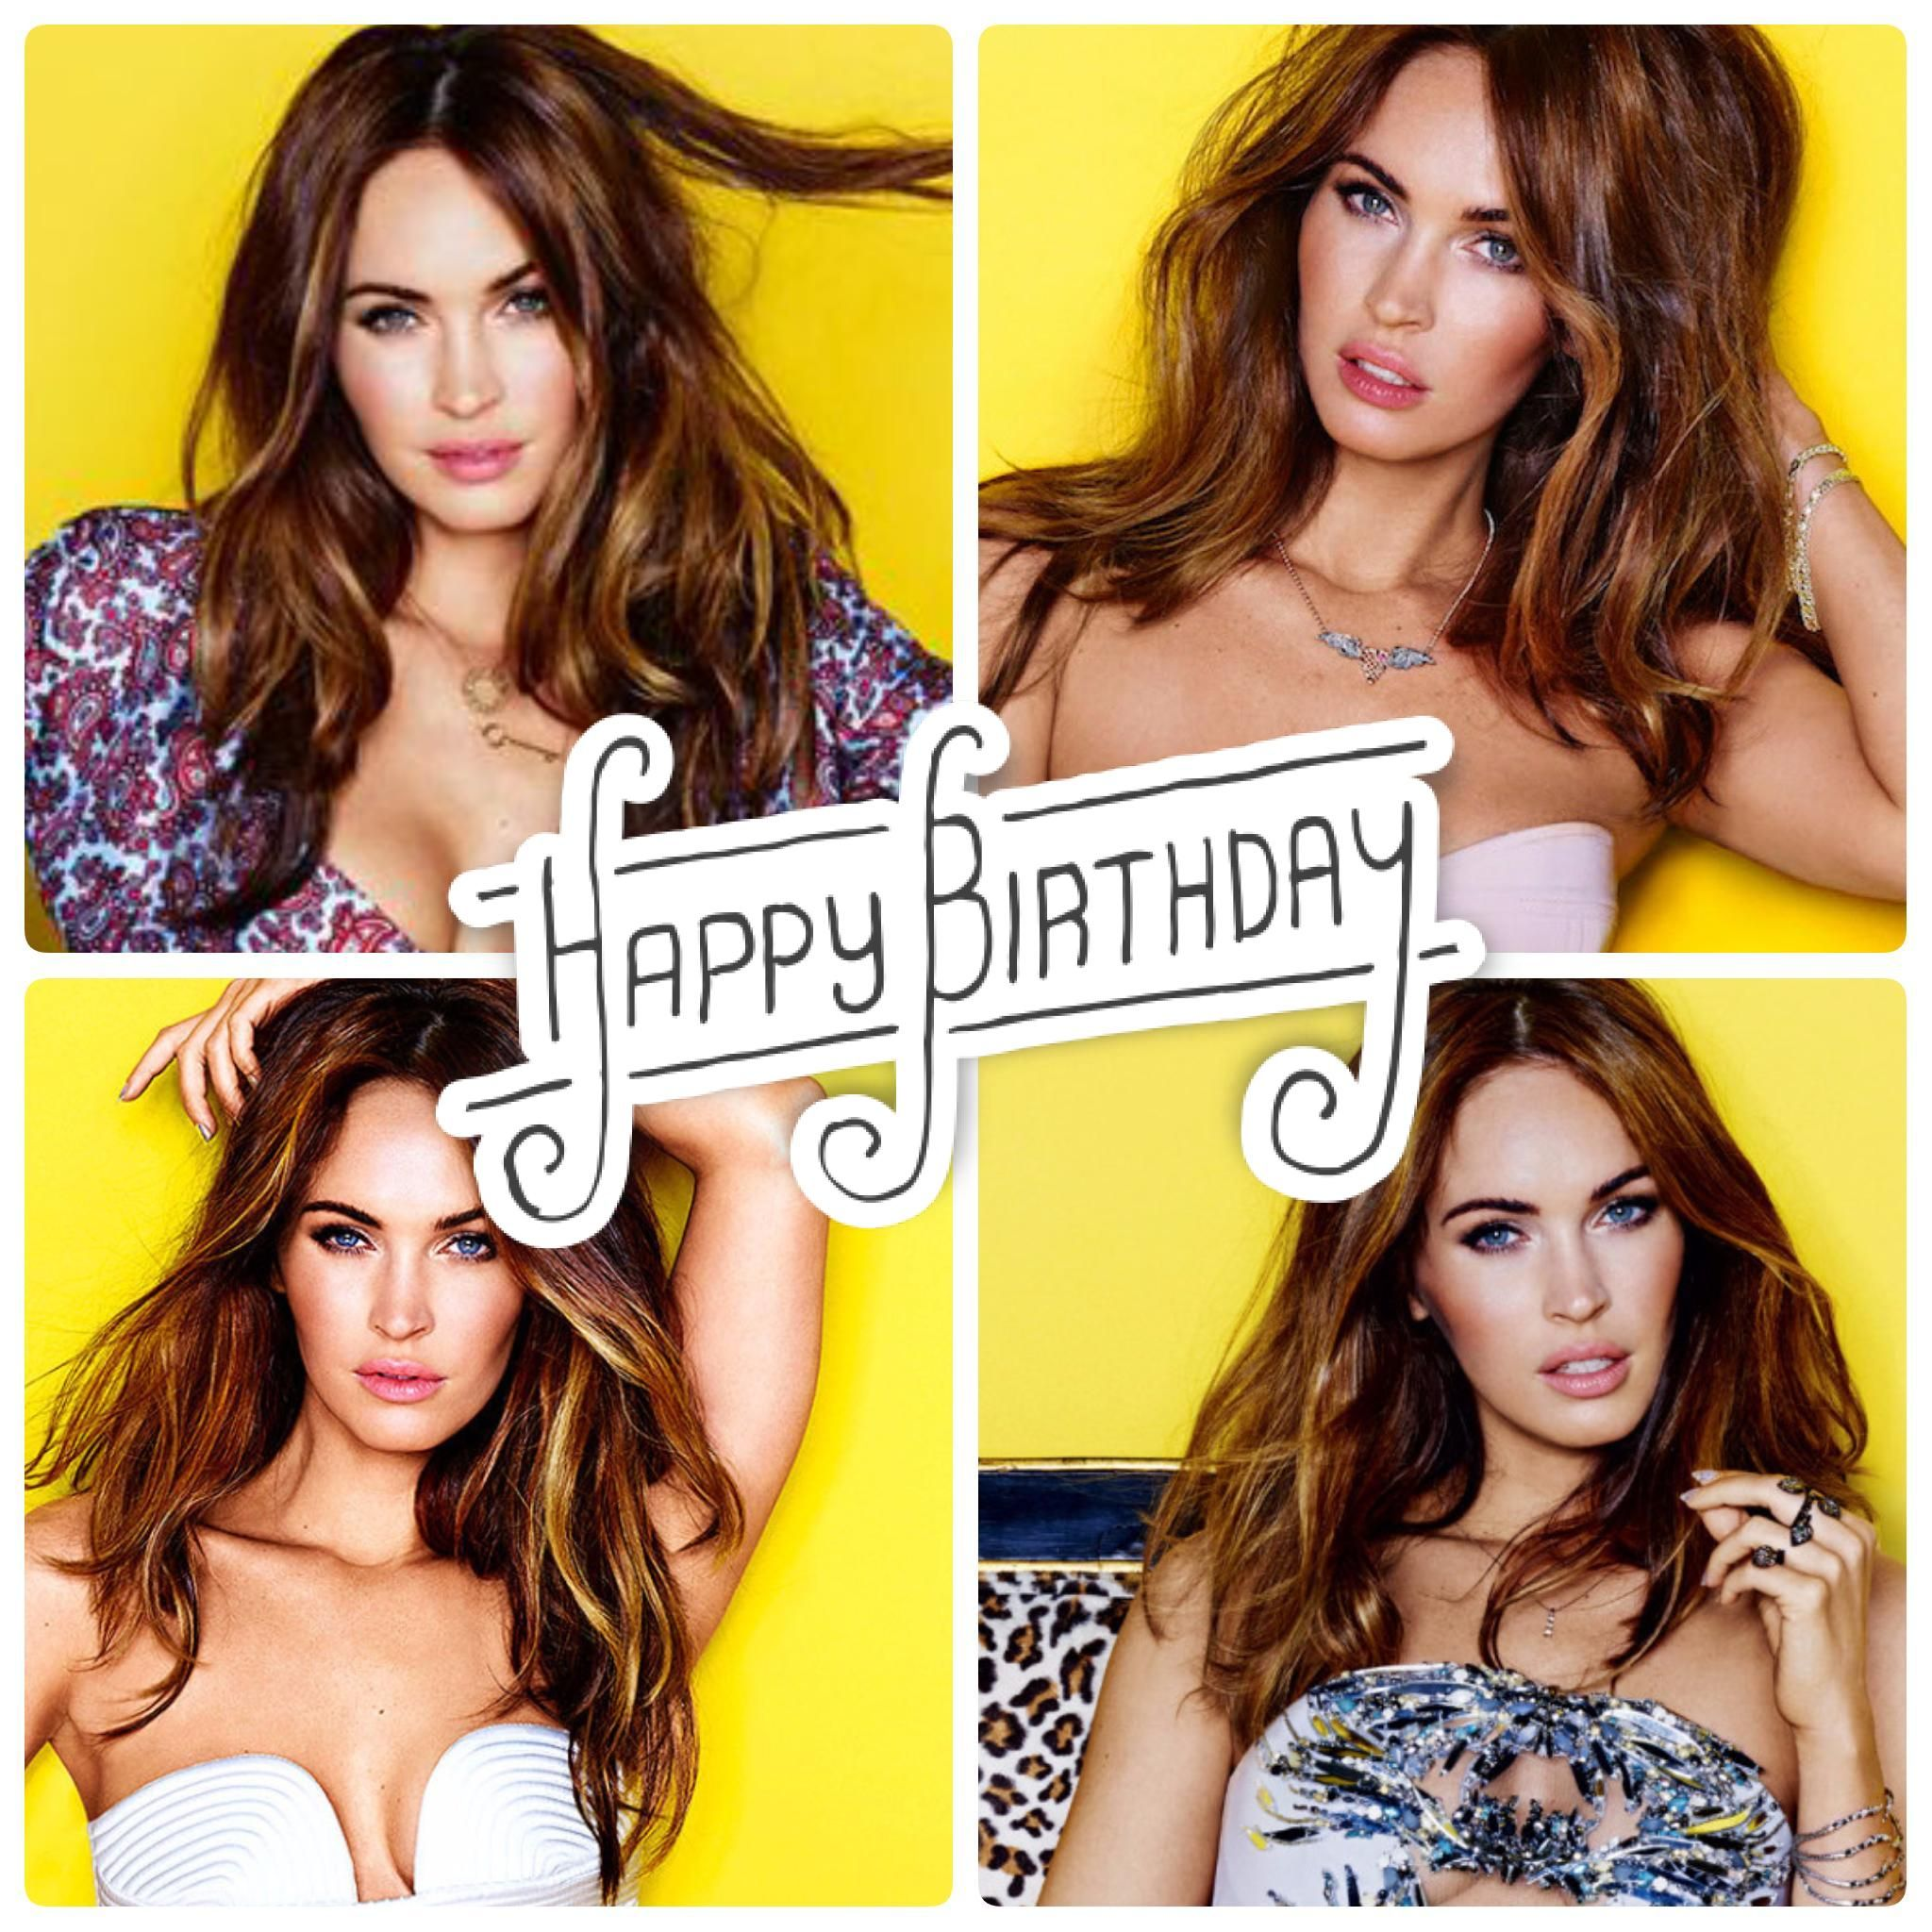 Wishing the very talented, Megan Fox, a Happy Birthday today.  Help us celebrate her.